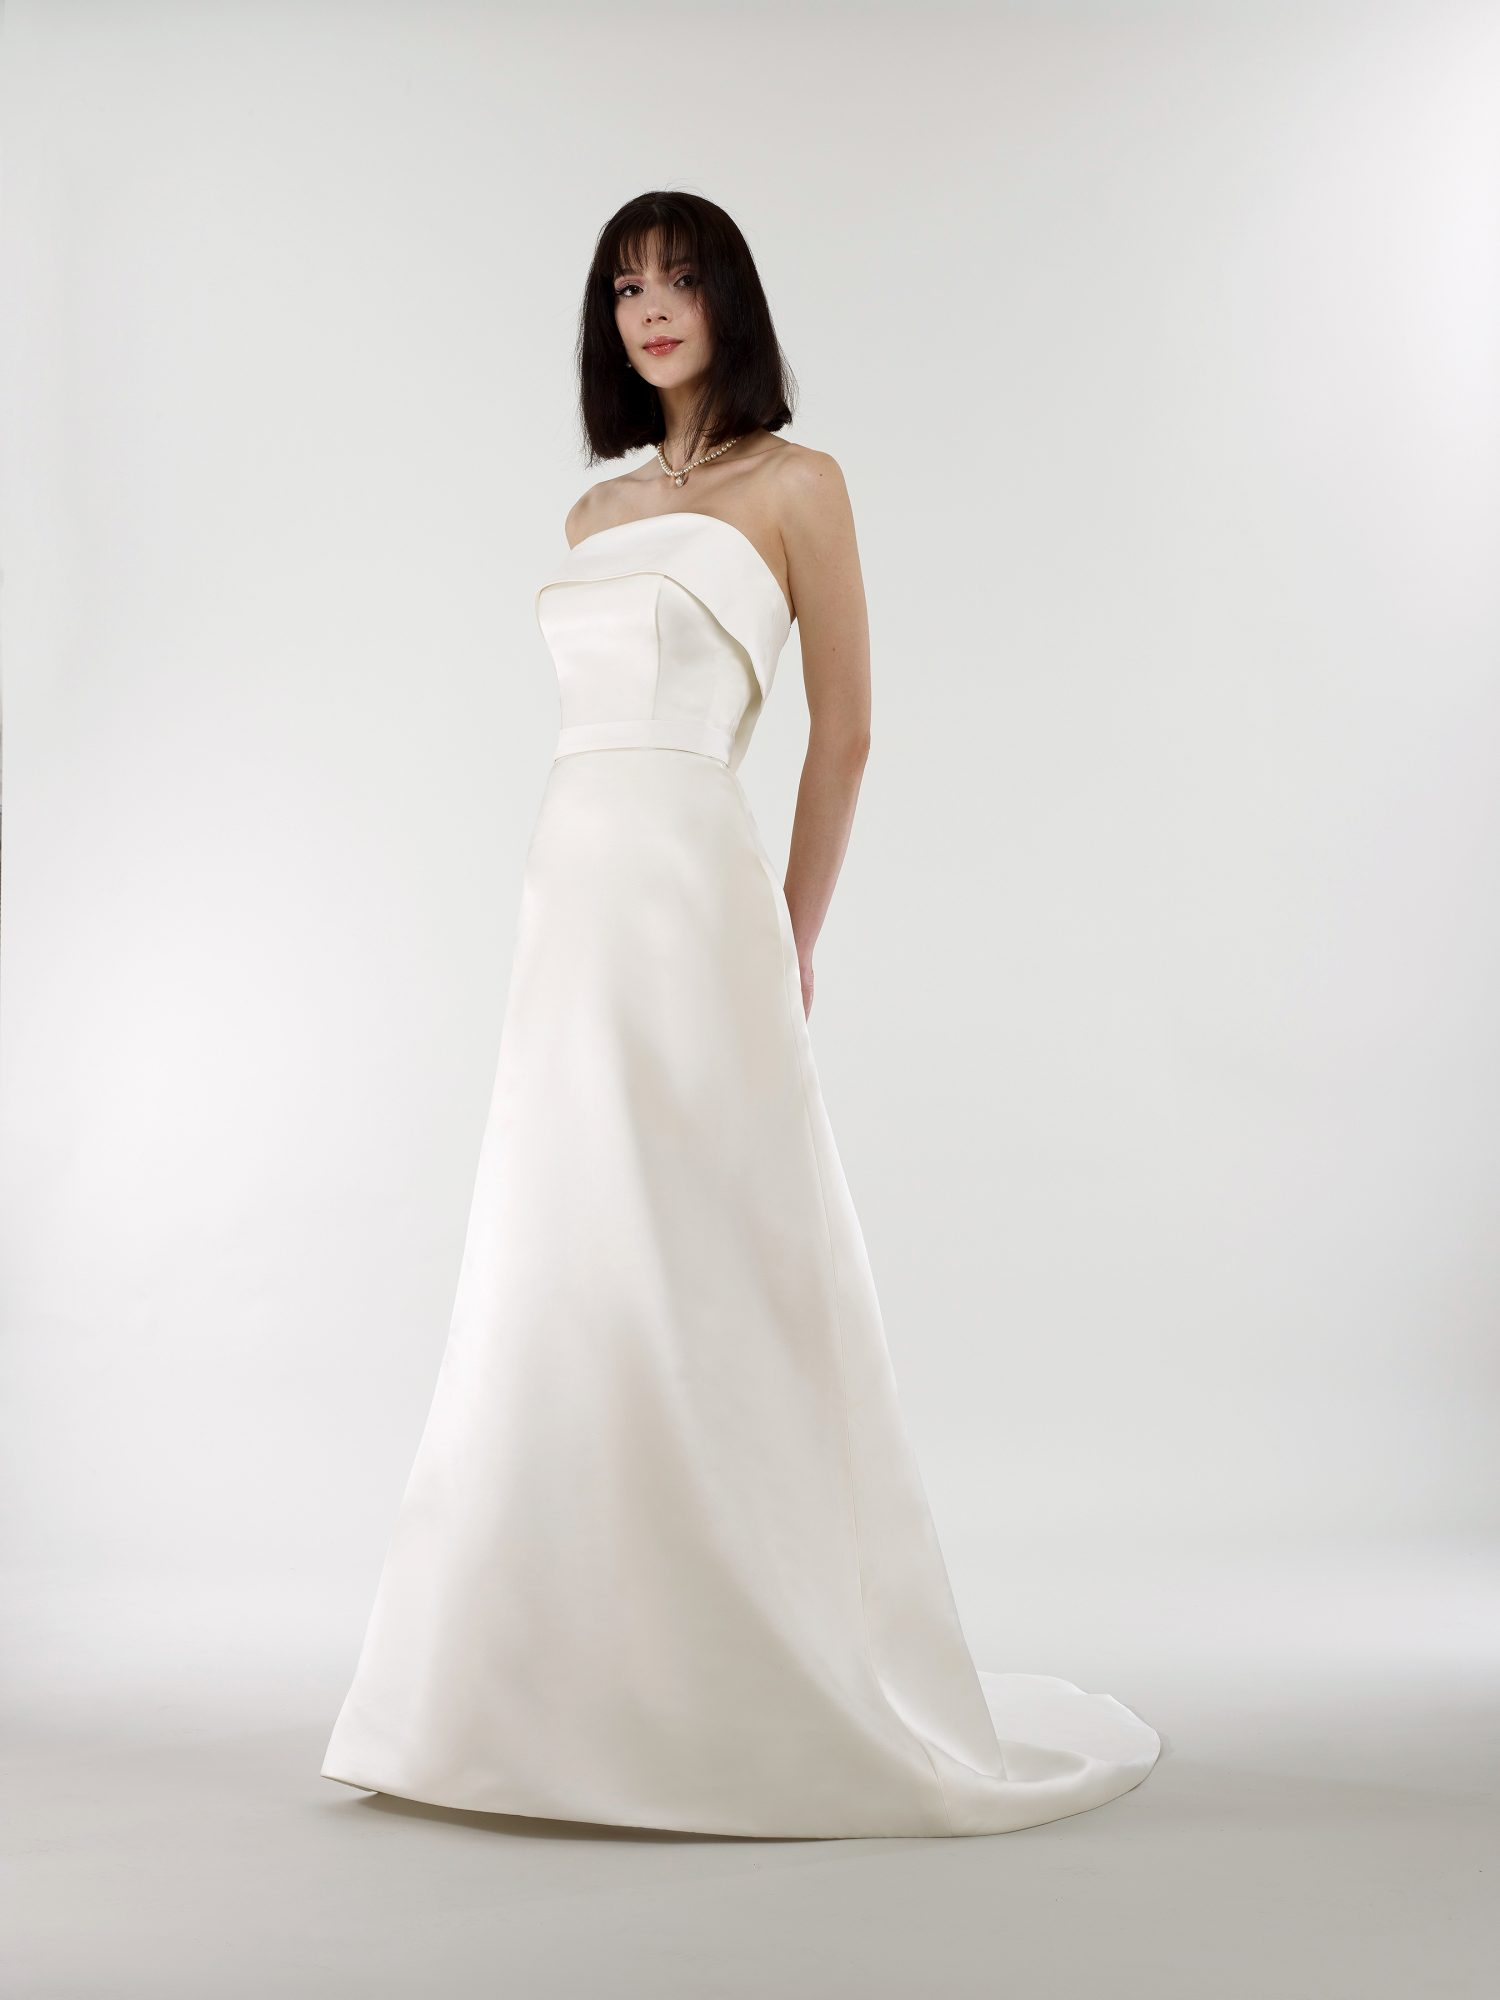 steven birnbaum bridal wedding dress spring 2019 strapless fold over a-line